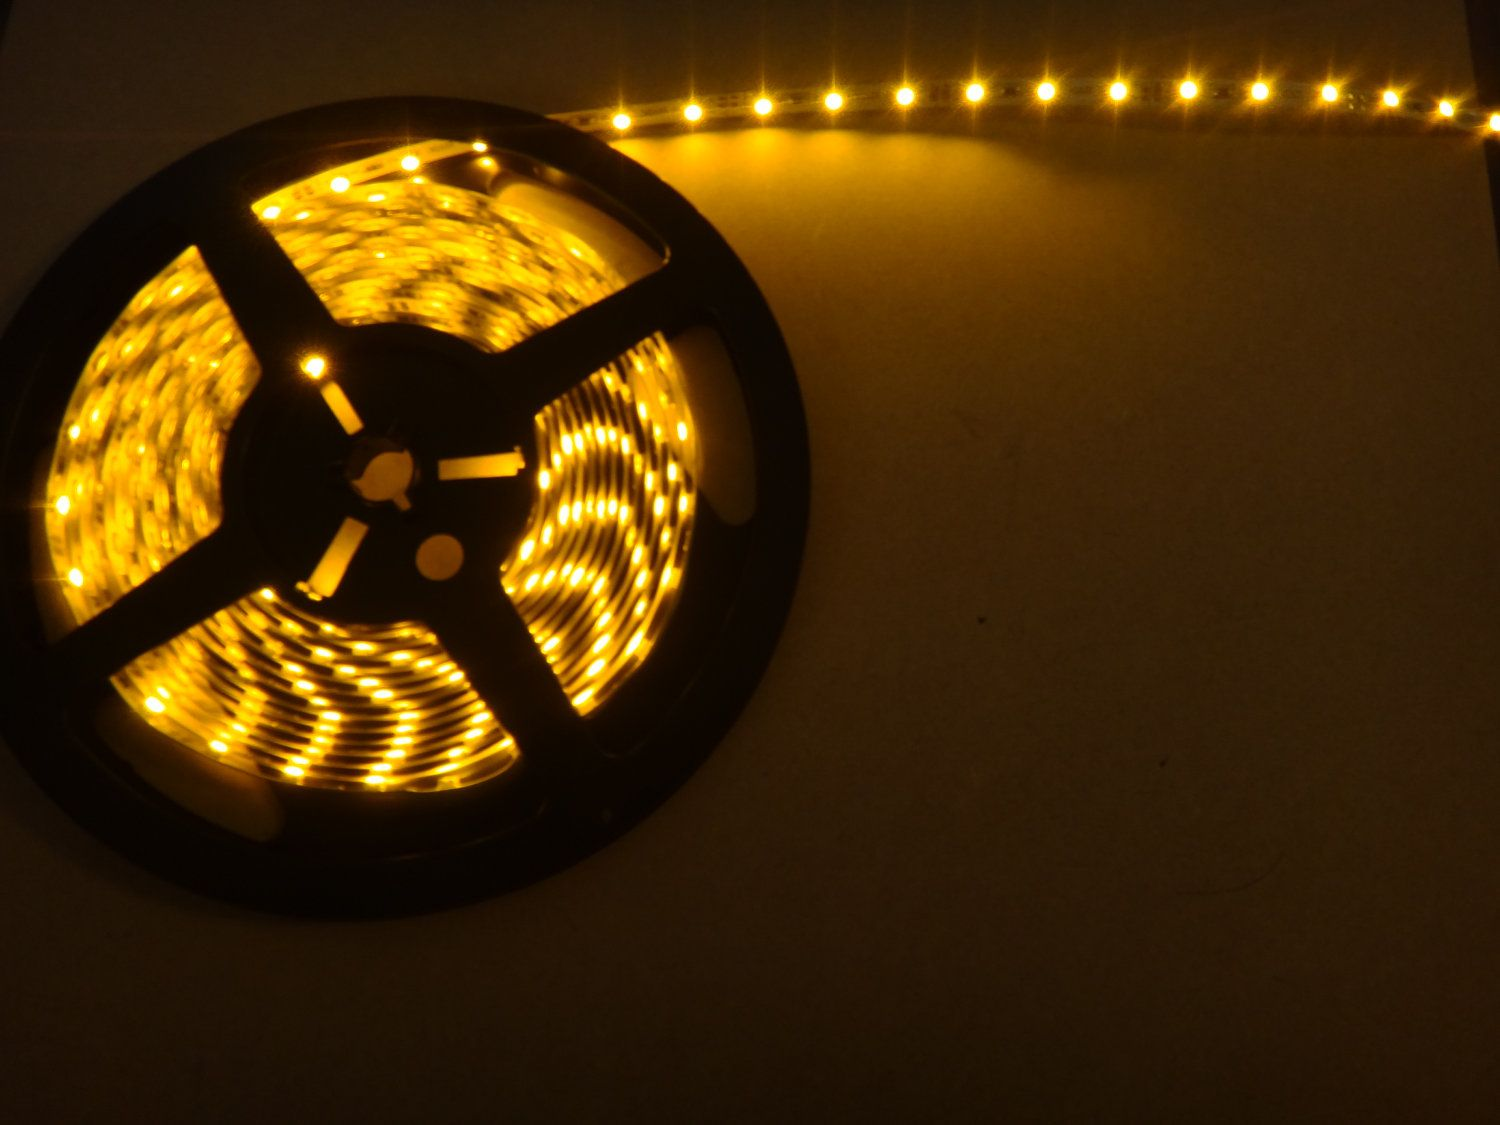 Yellow 1 4 Led Strip Super Bright For Led Lit By 1madfabricator 4 75 Led Lights Led Strip Led